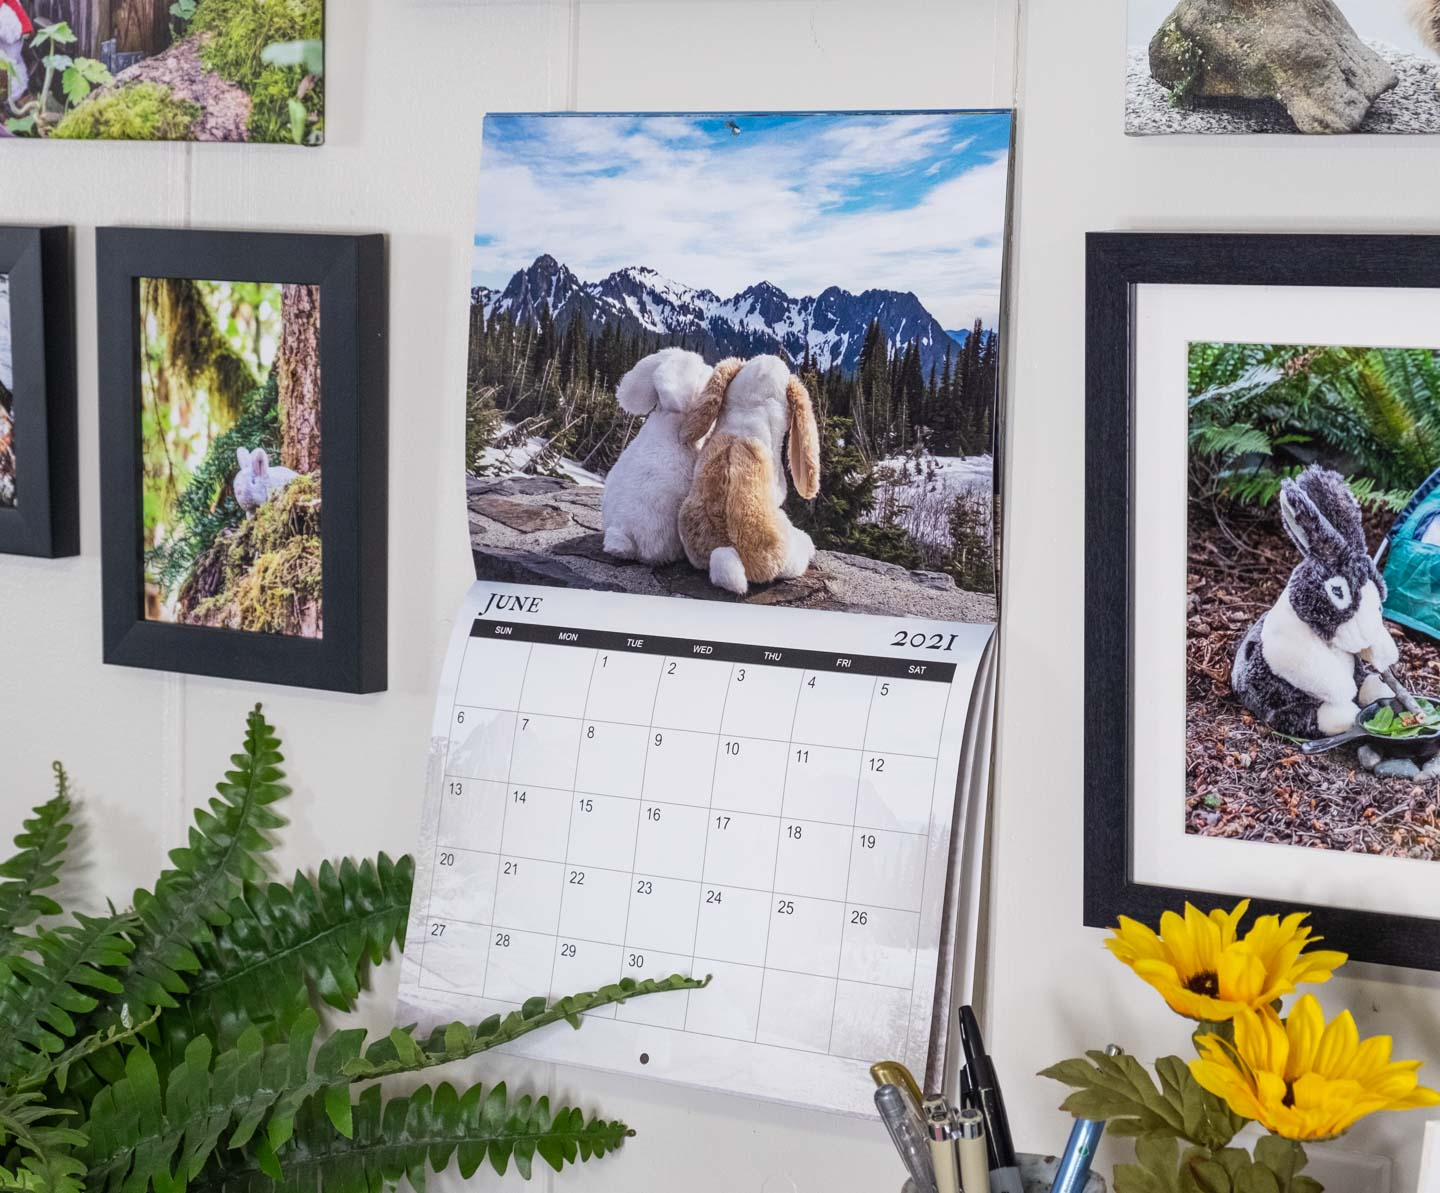 Wall calendar with a picture of two stuffed animal bunnies